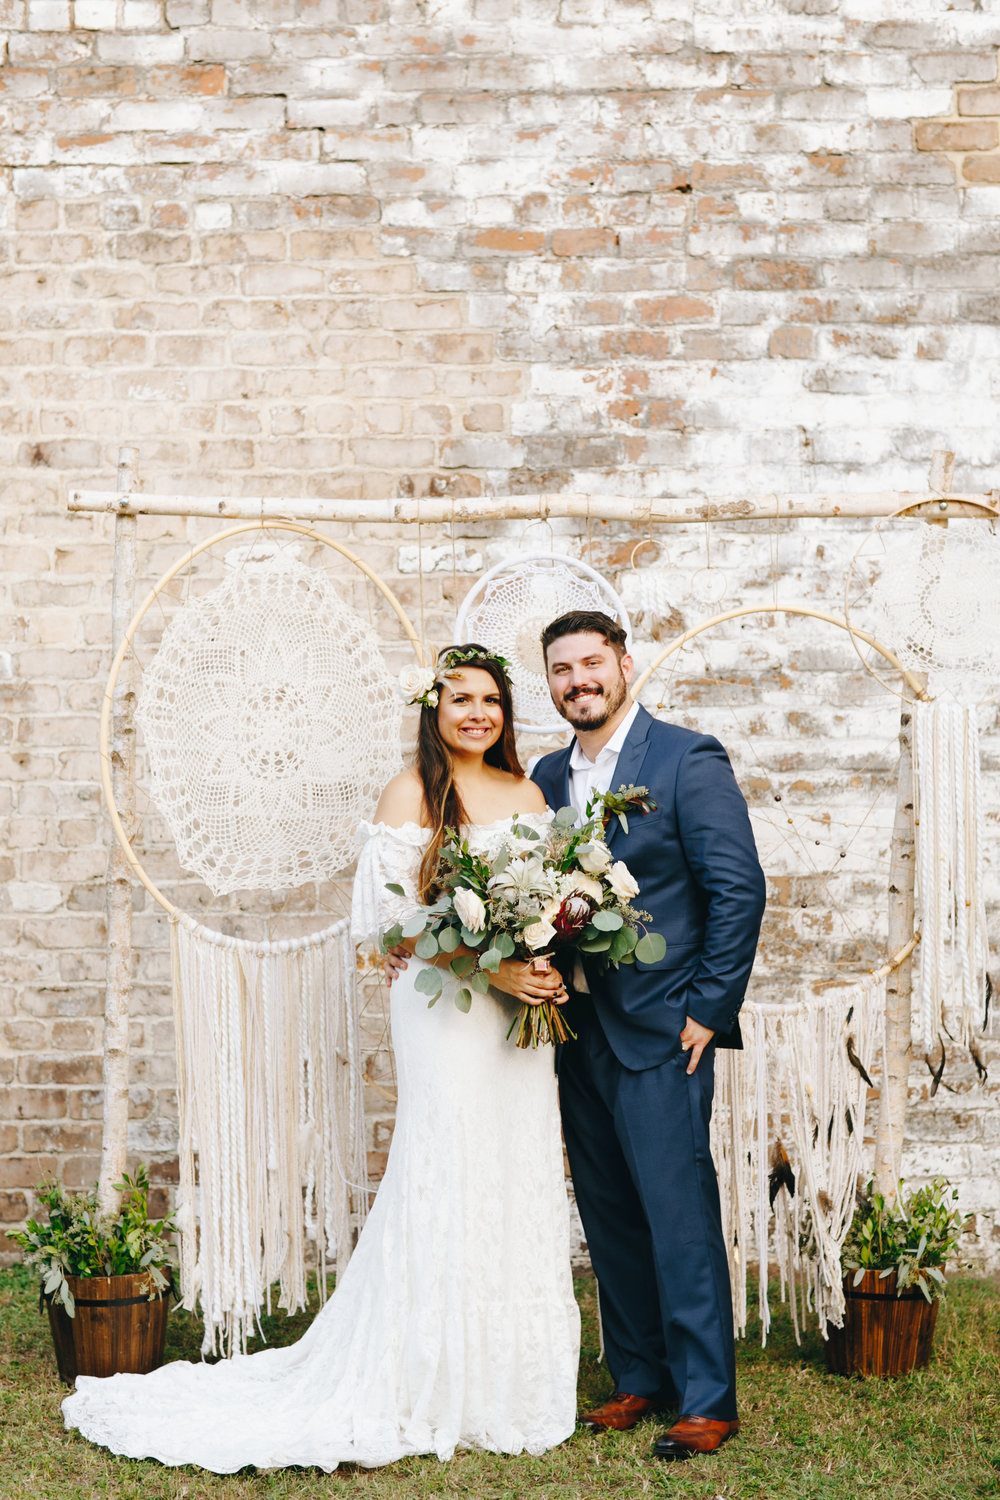 LISSETTE'S ROMANTIC ROUNDHOUSE WEDDING